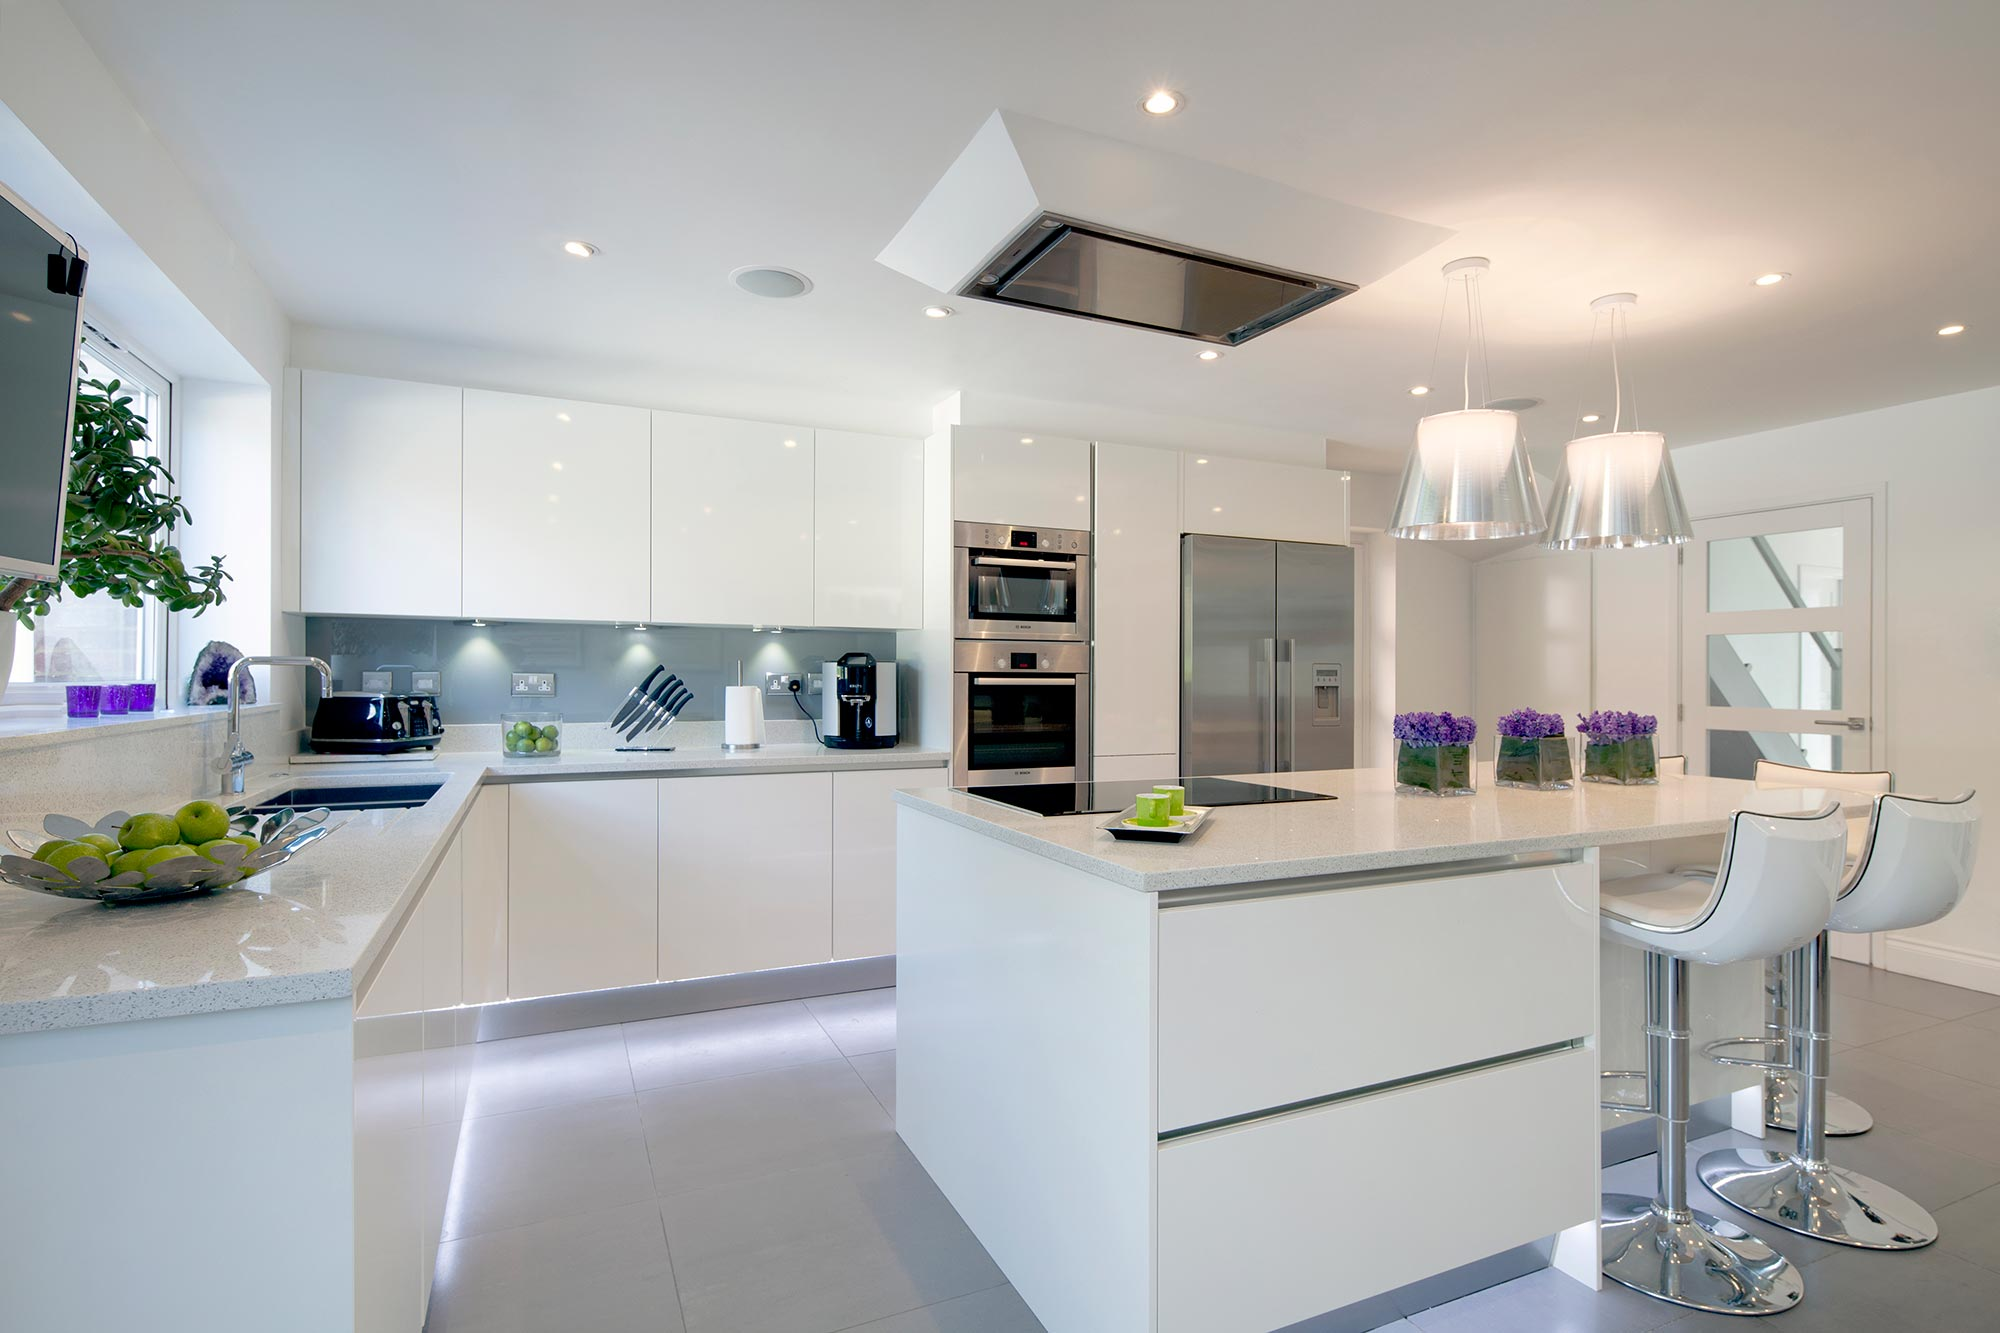 Kitchen Design Uk Images Small Kitchen Designs On A Budget My Decorative